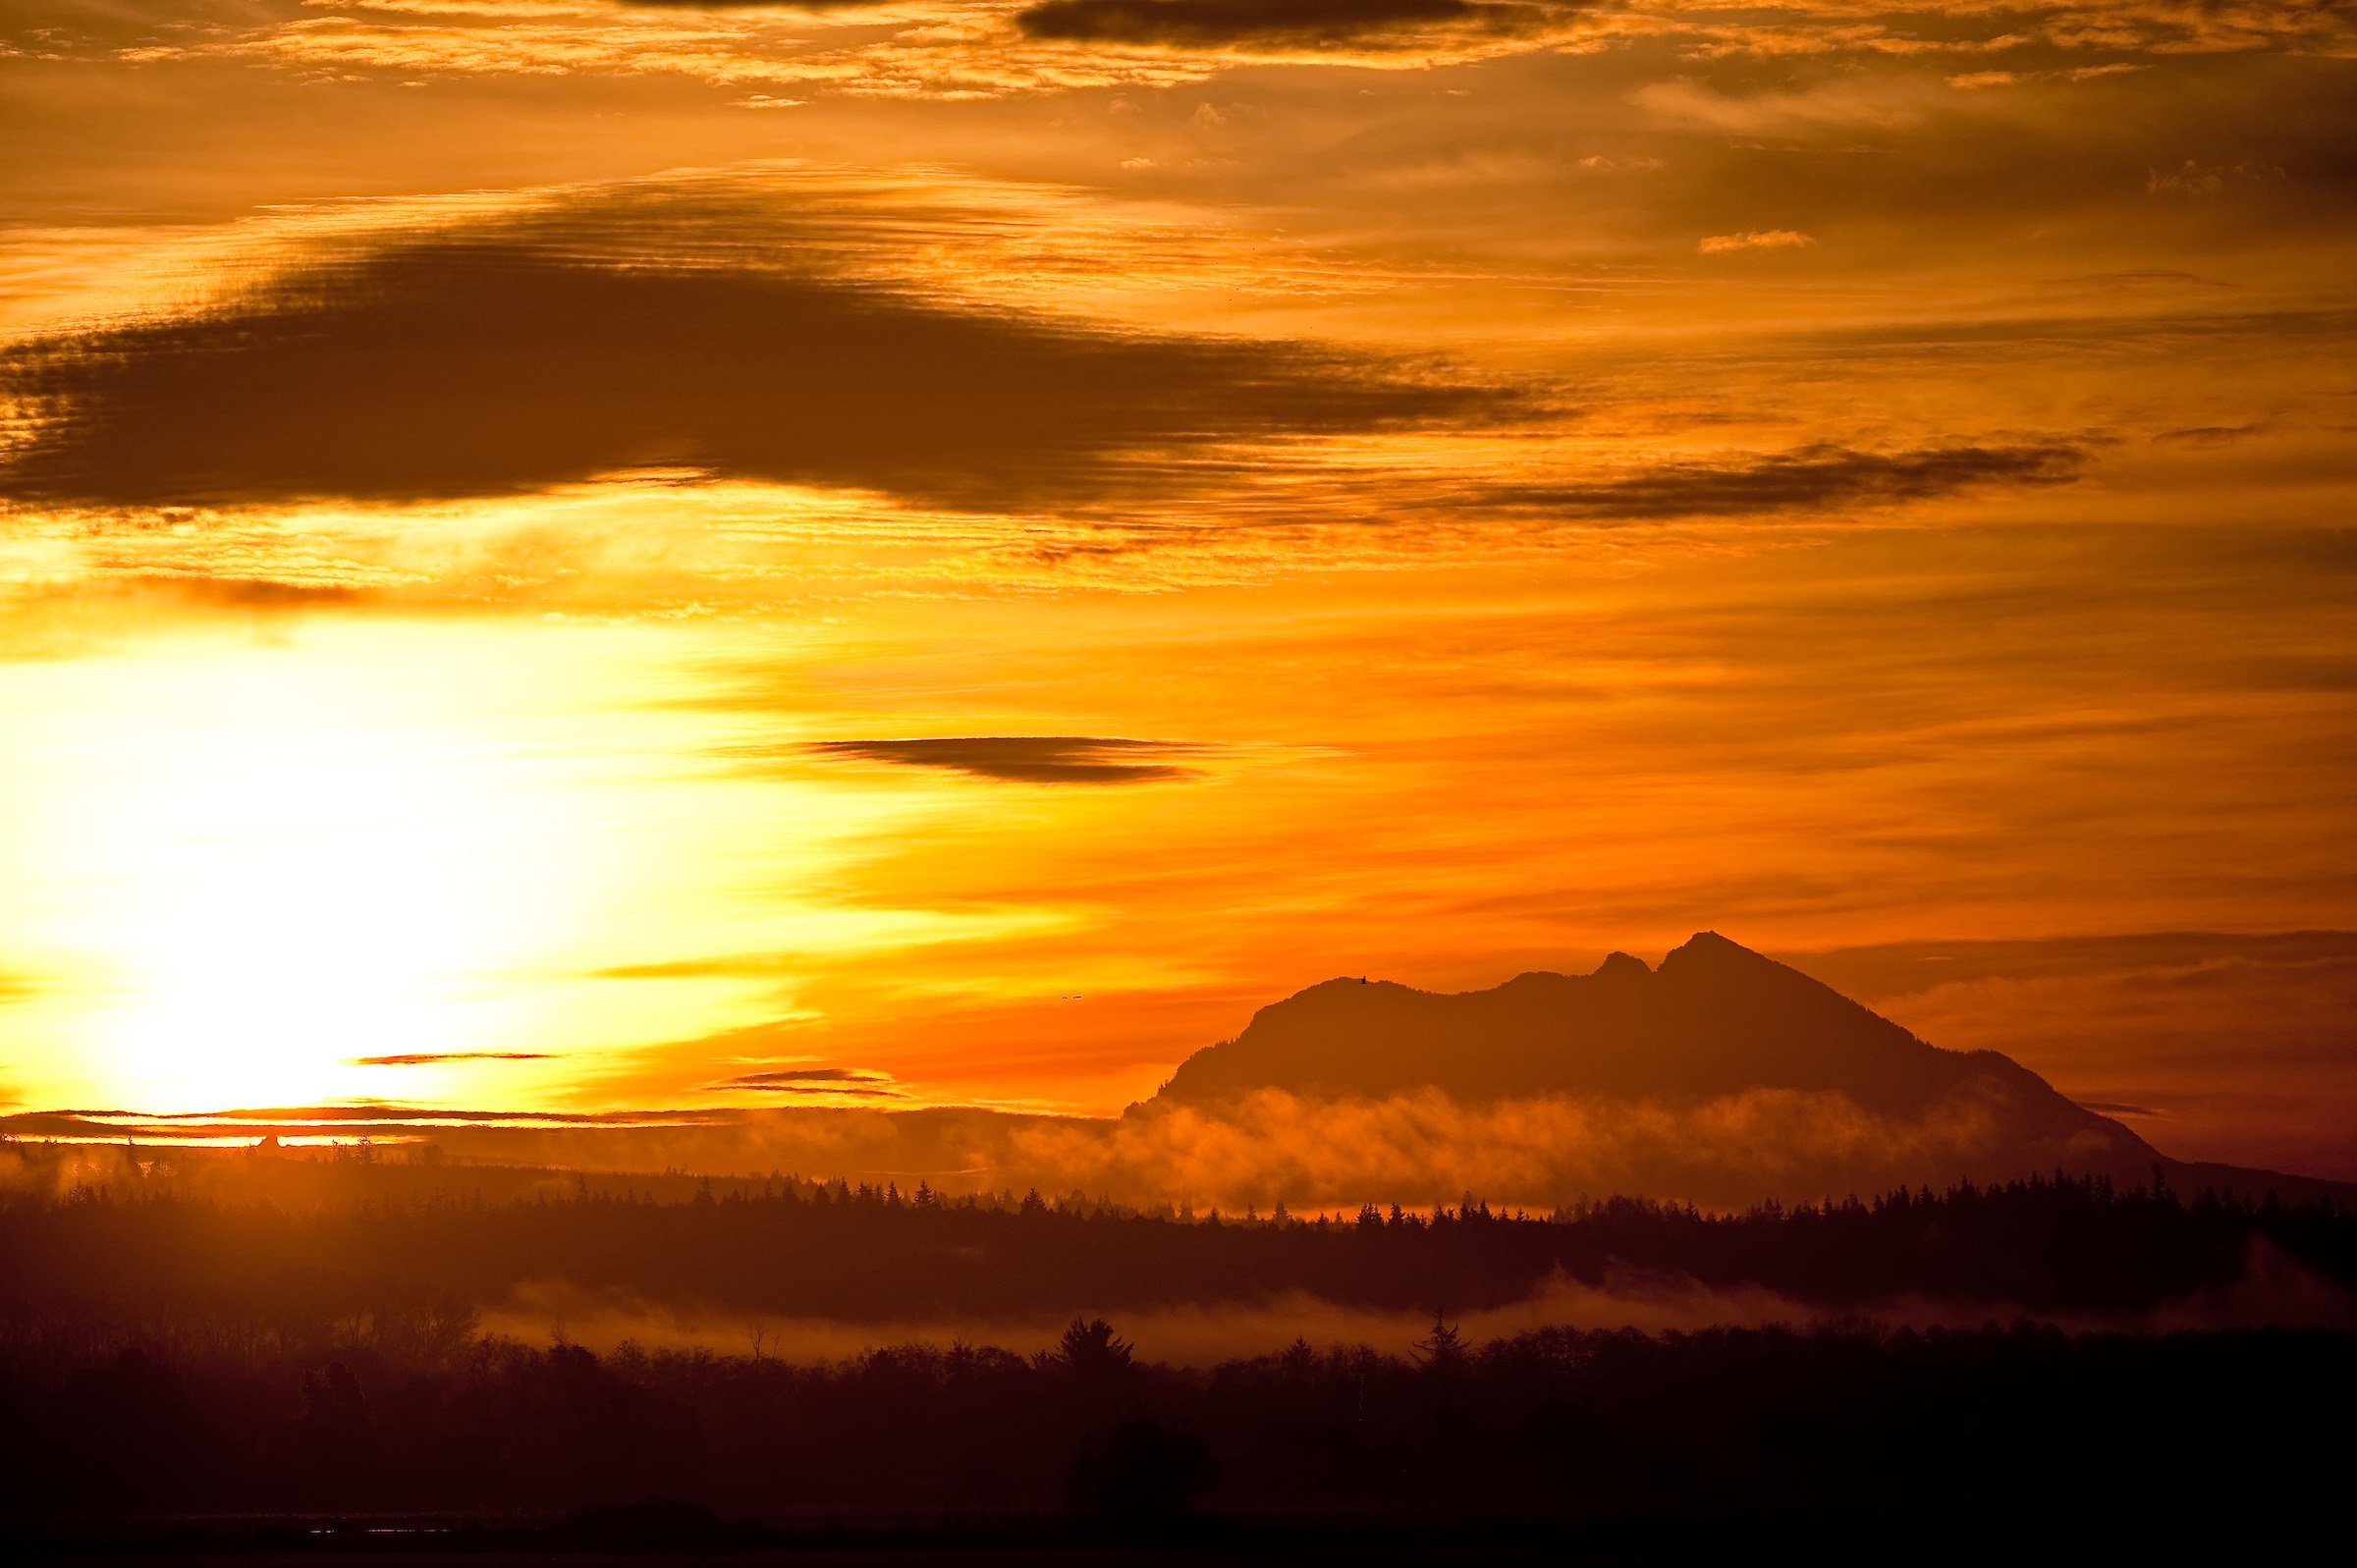 SUNRISE, NORTH CASCADE MOUNTAINS. © GIVEN PHOTOGRAPHY 2018